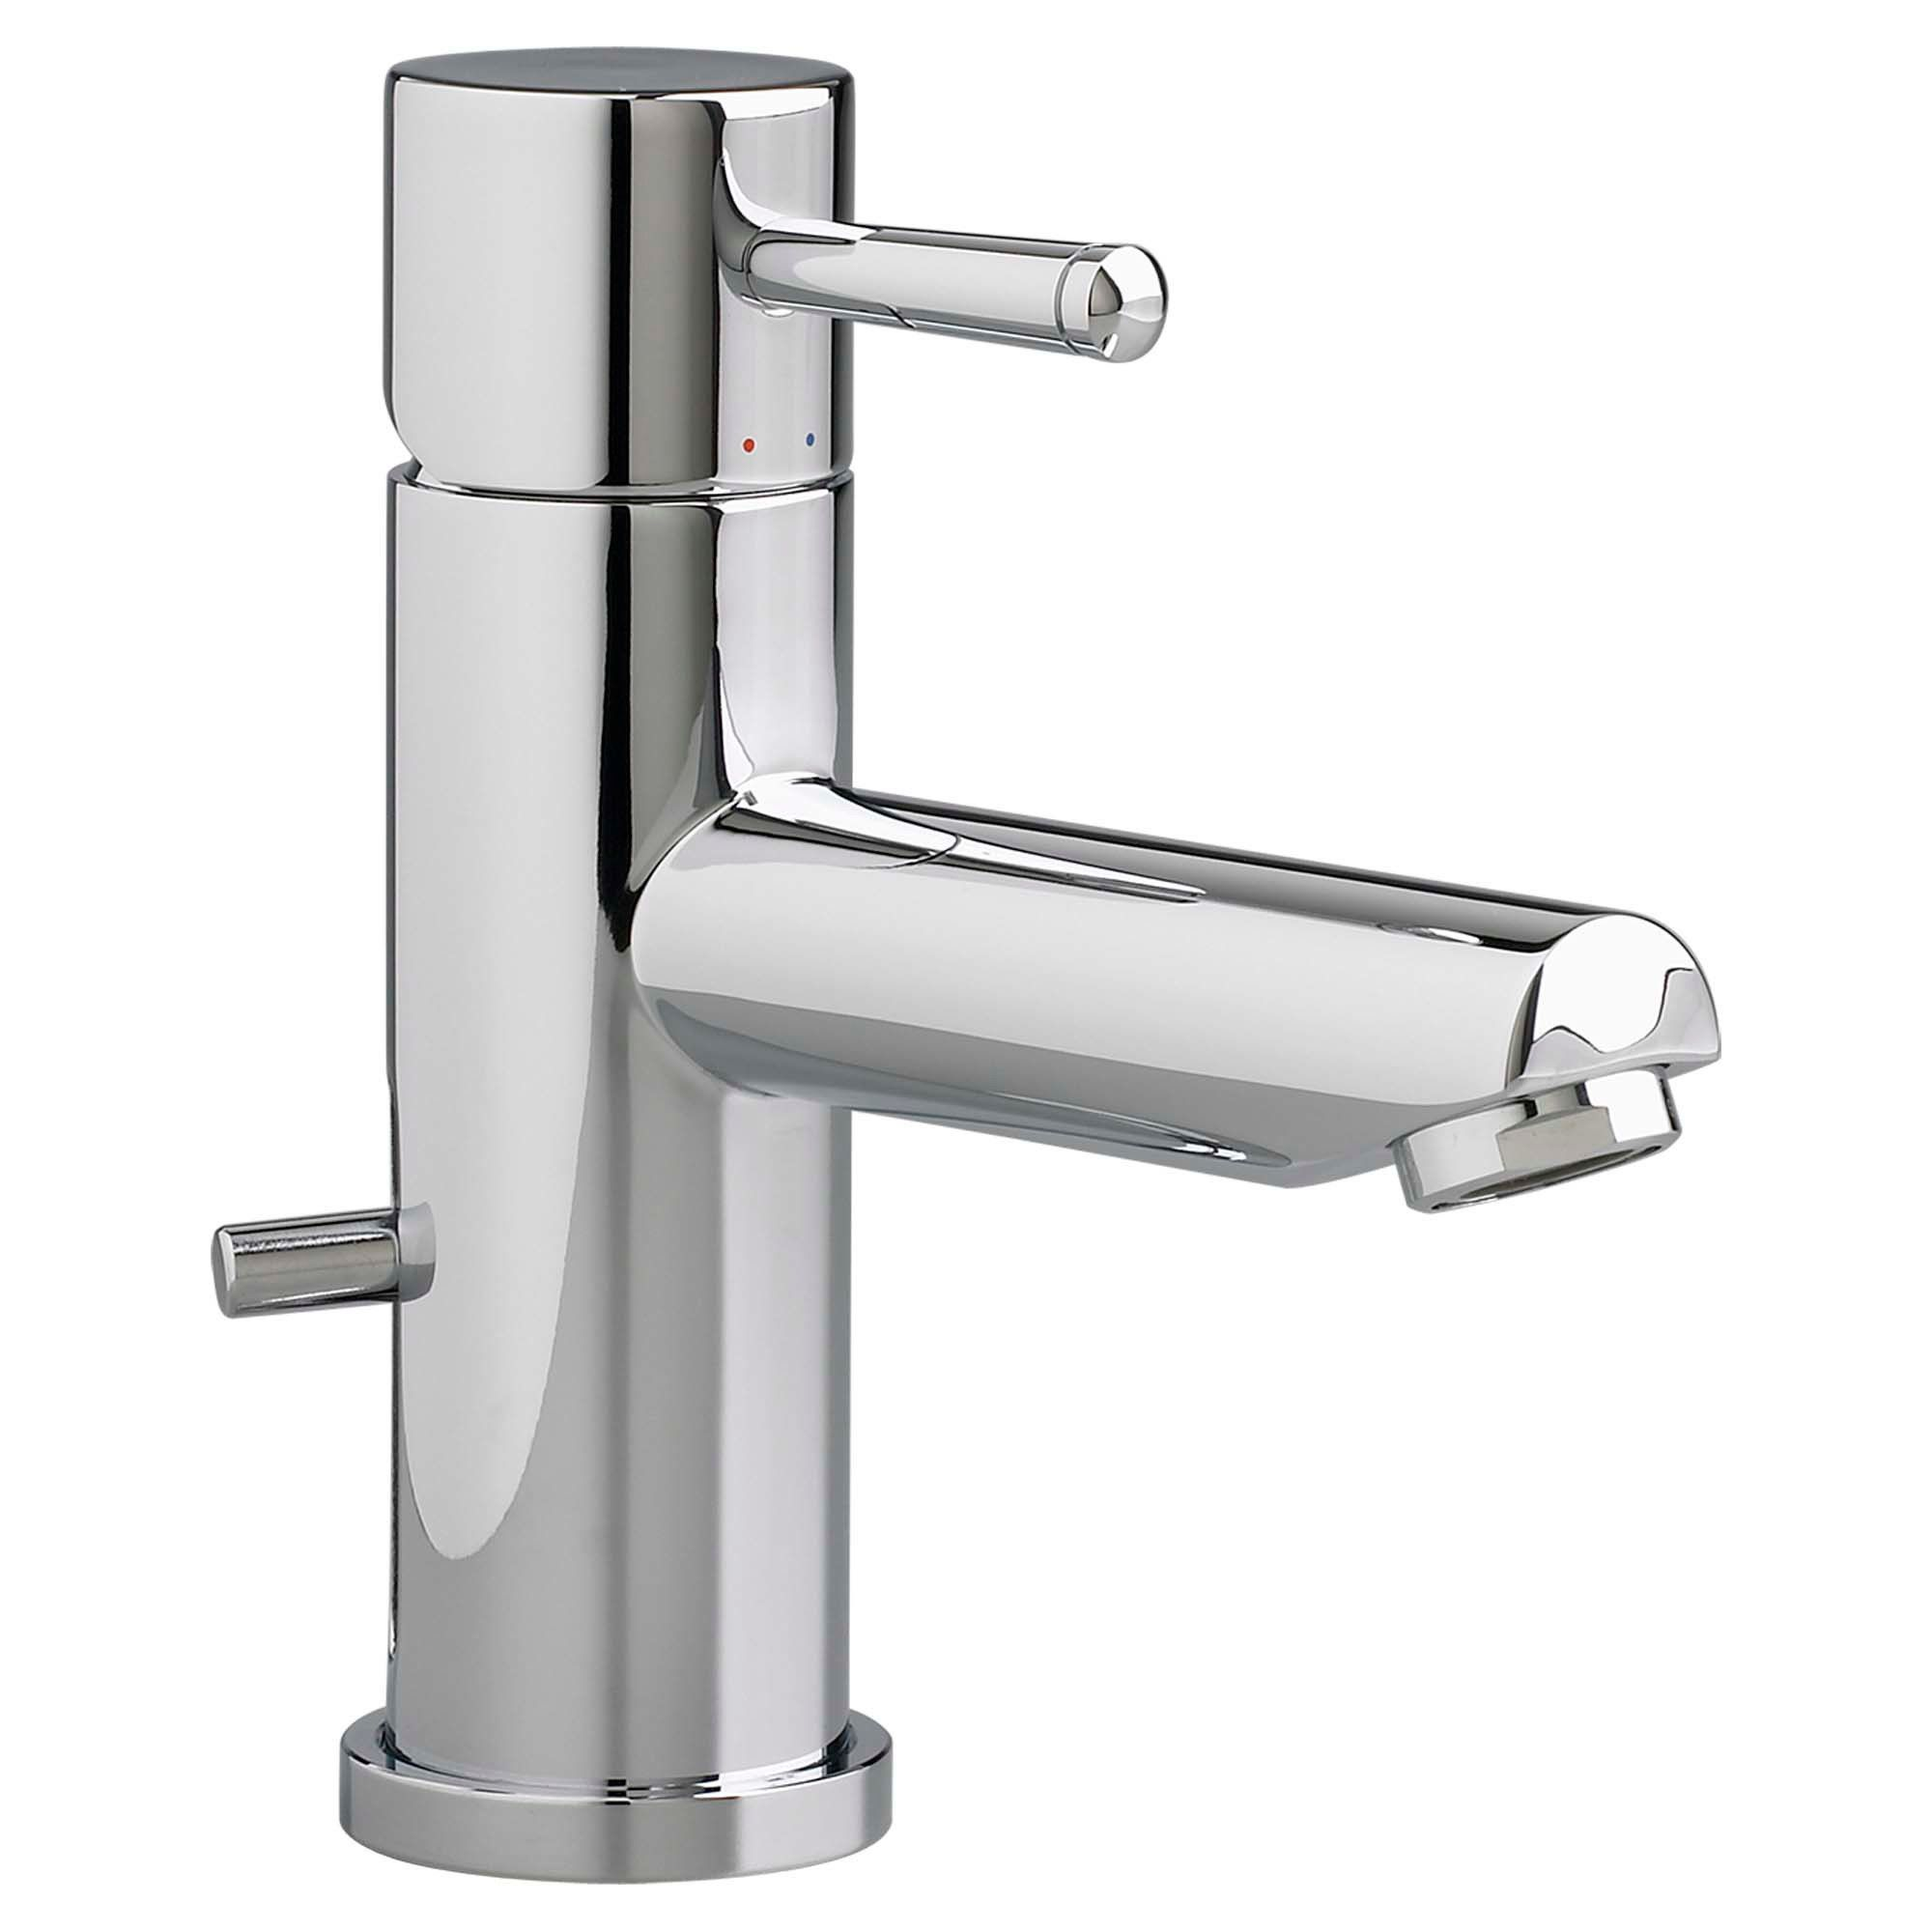 faucets pdx kraus single wayfair faucet aquila bathroom hole reviews home improvement